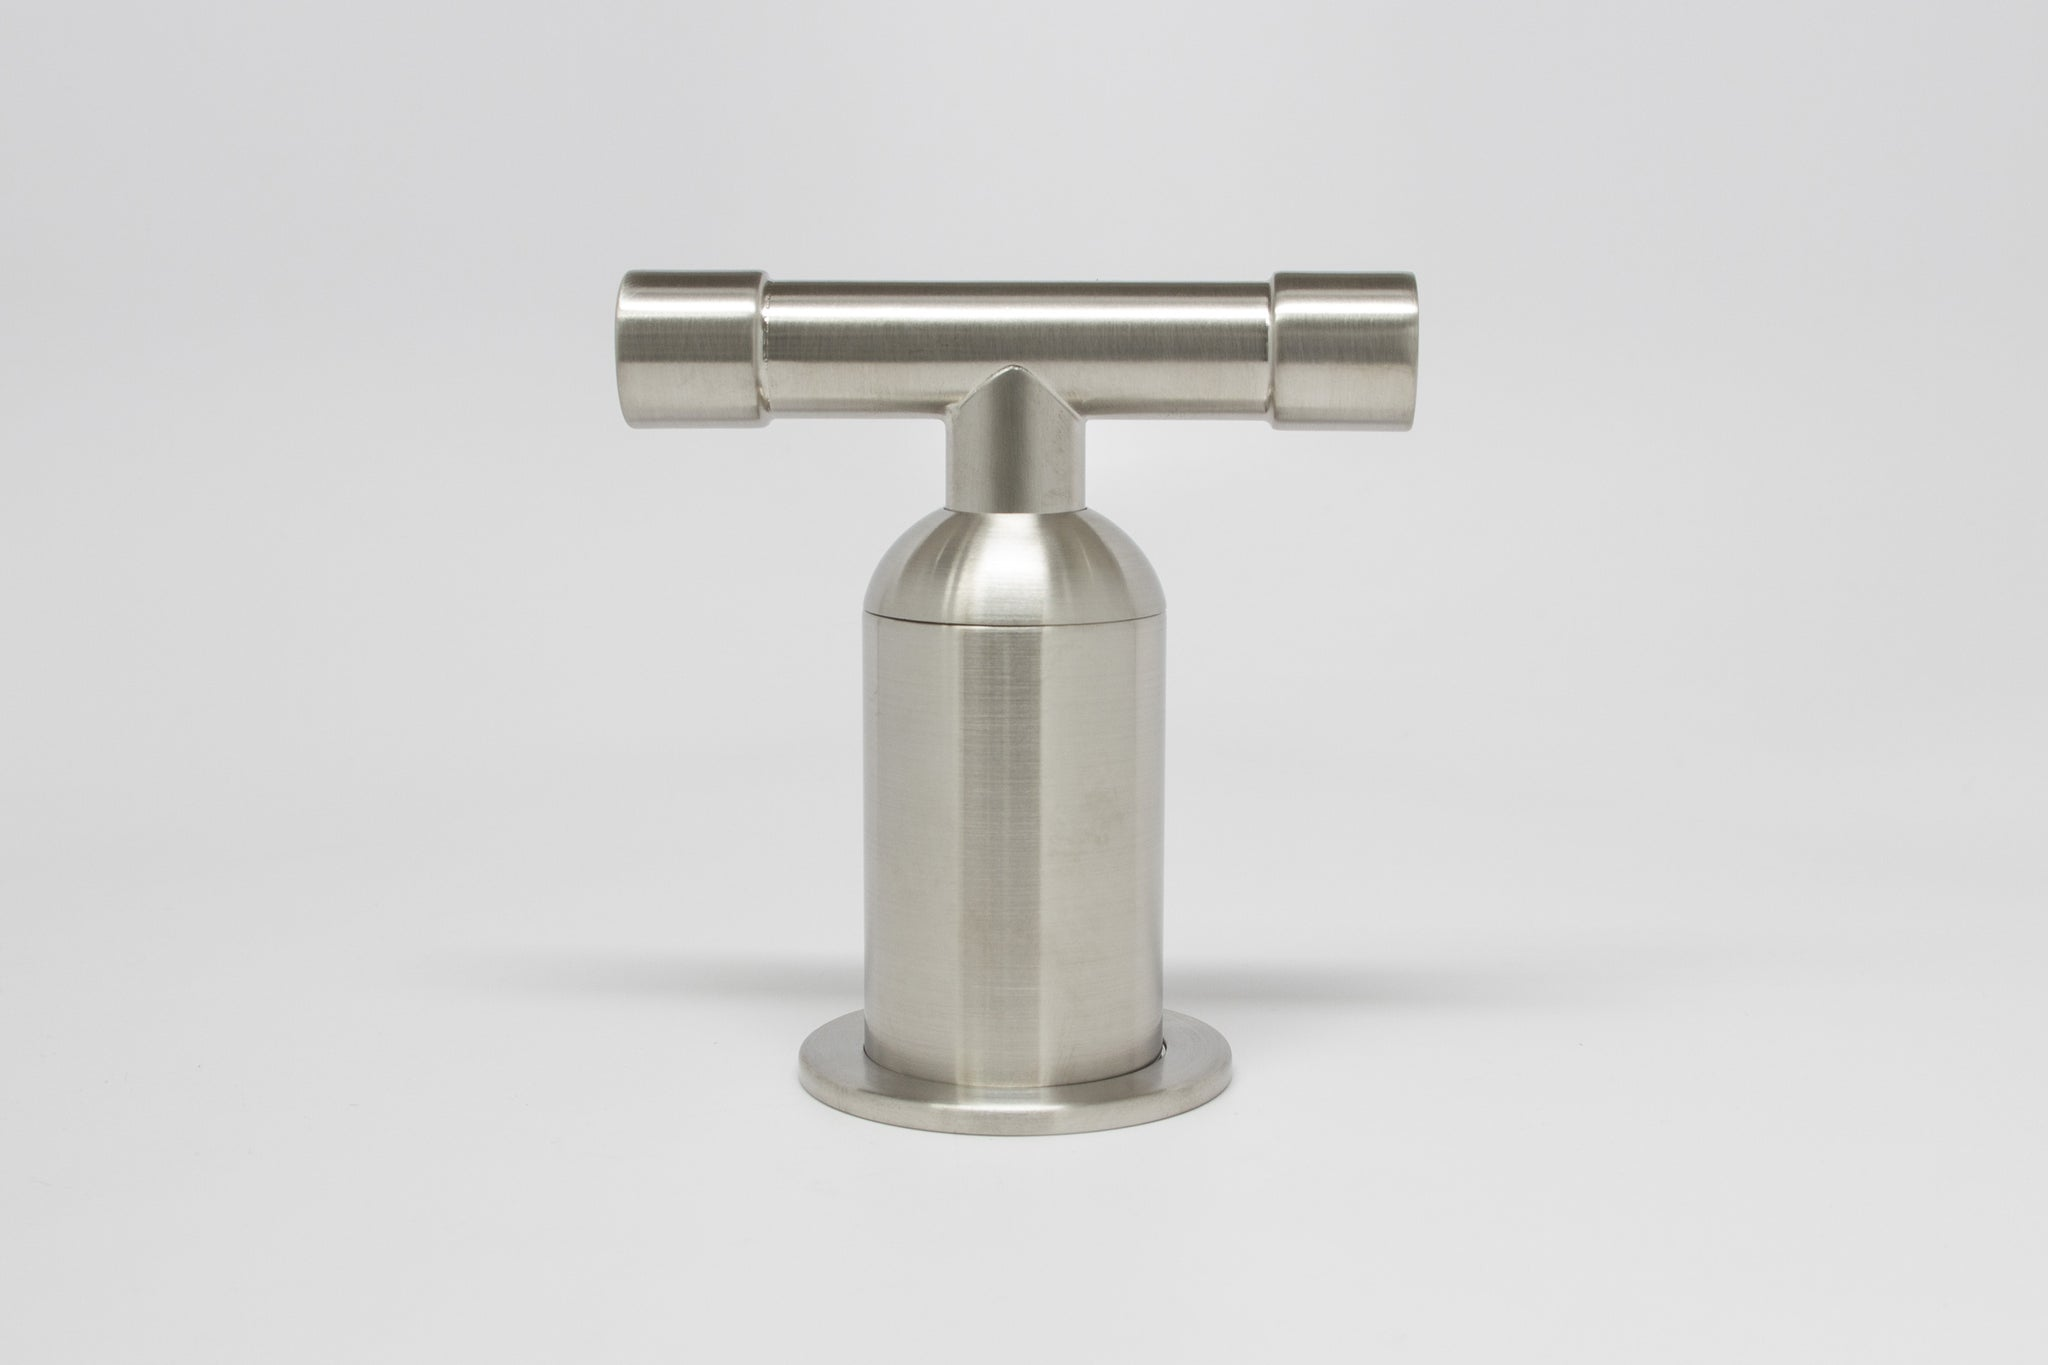 Tall Lavatory Faucet with Elbow Spout